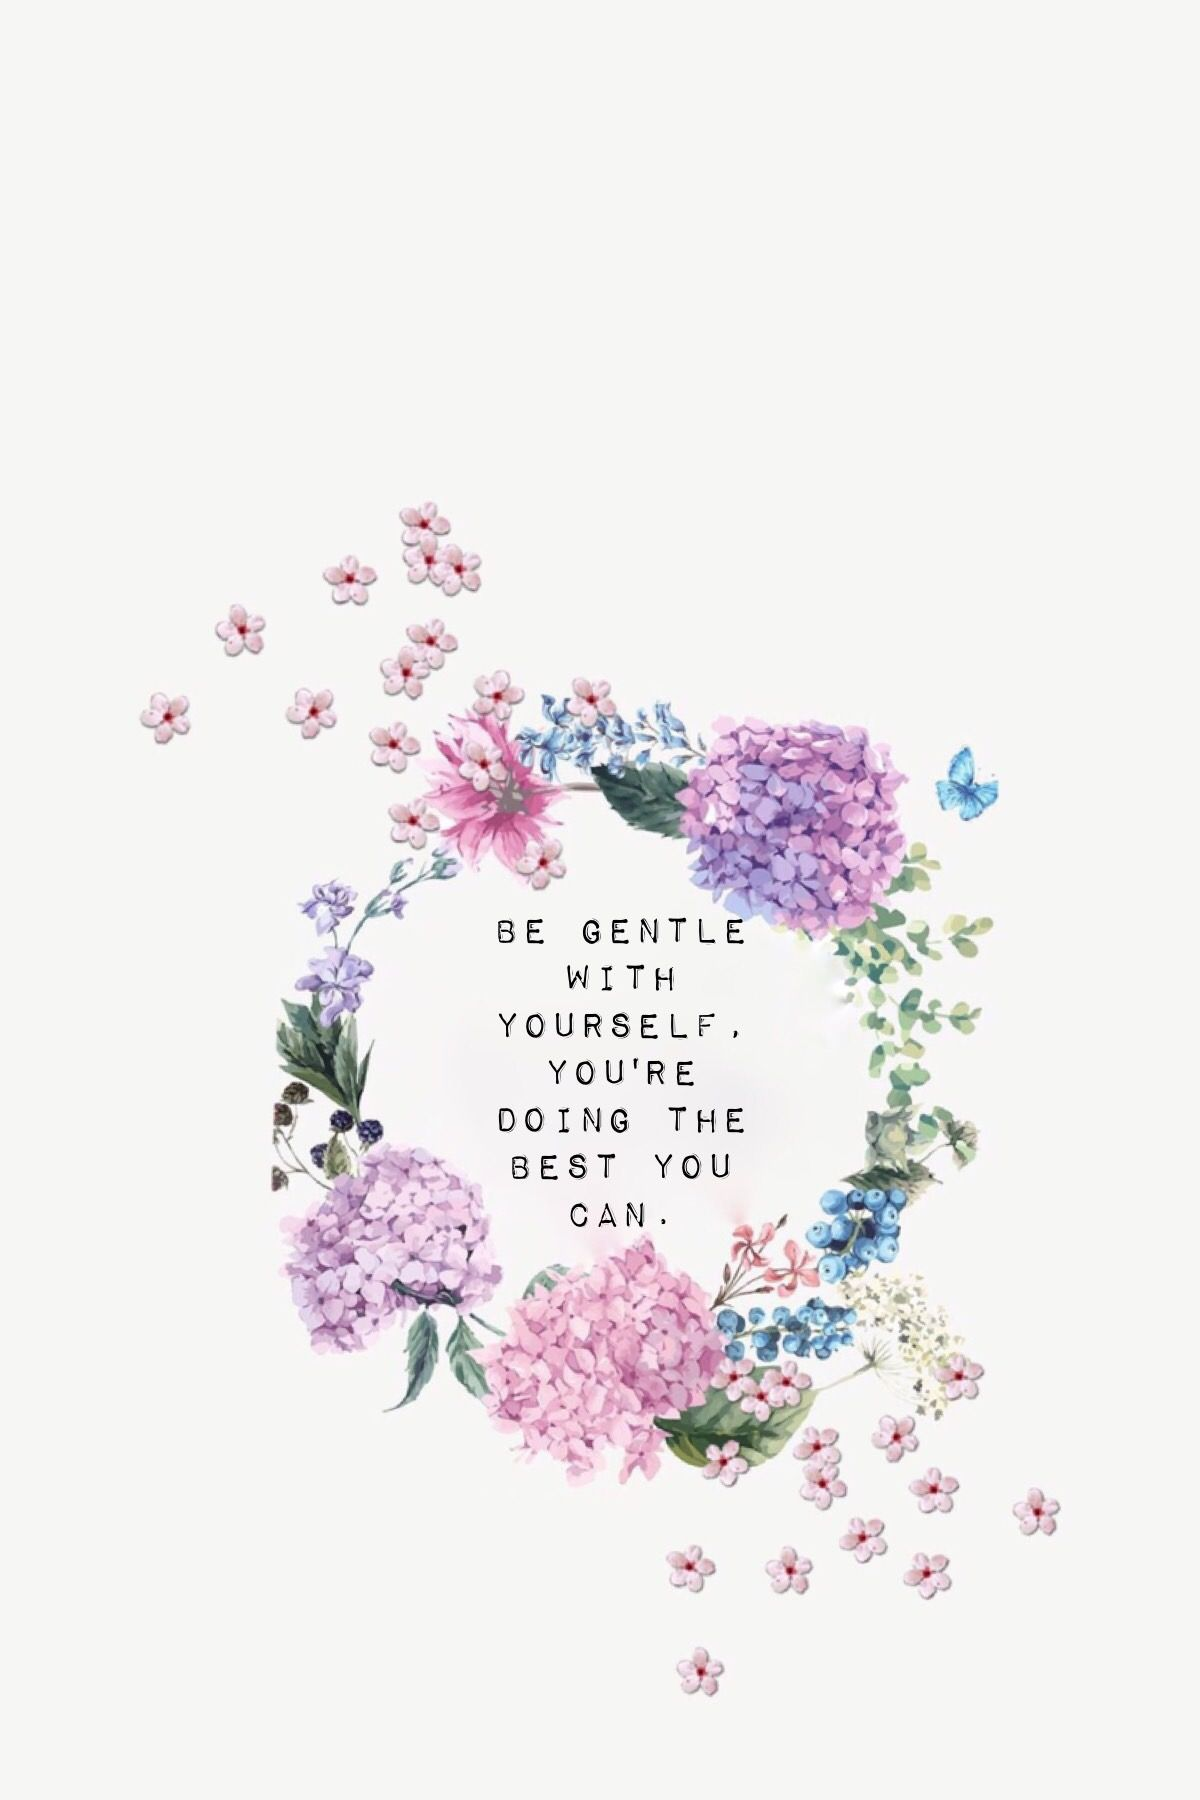 Love Yourself Selflove Seltesteem Recovery Wallpaper Iphone Background Wallpaper Iphone Quotes Wallpaper Quotes Wallpaper Iphone Love